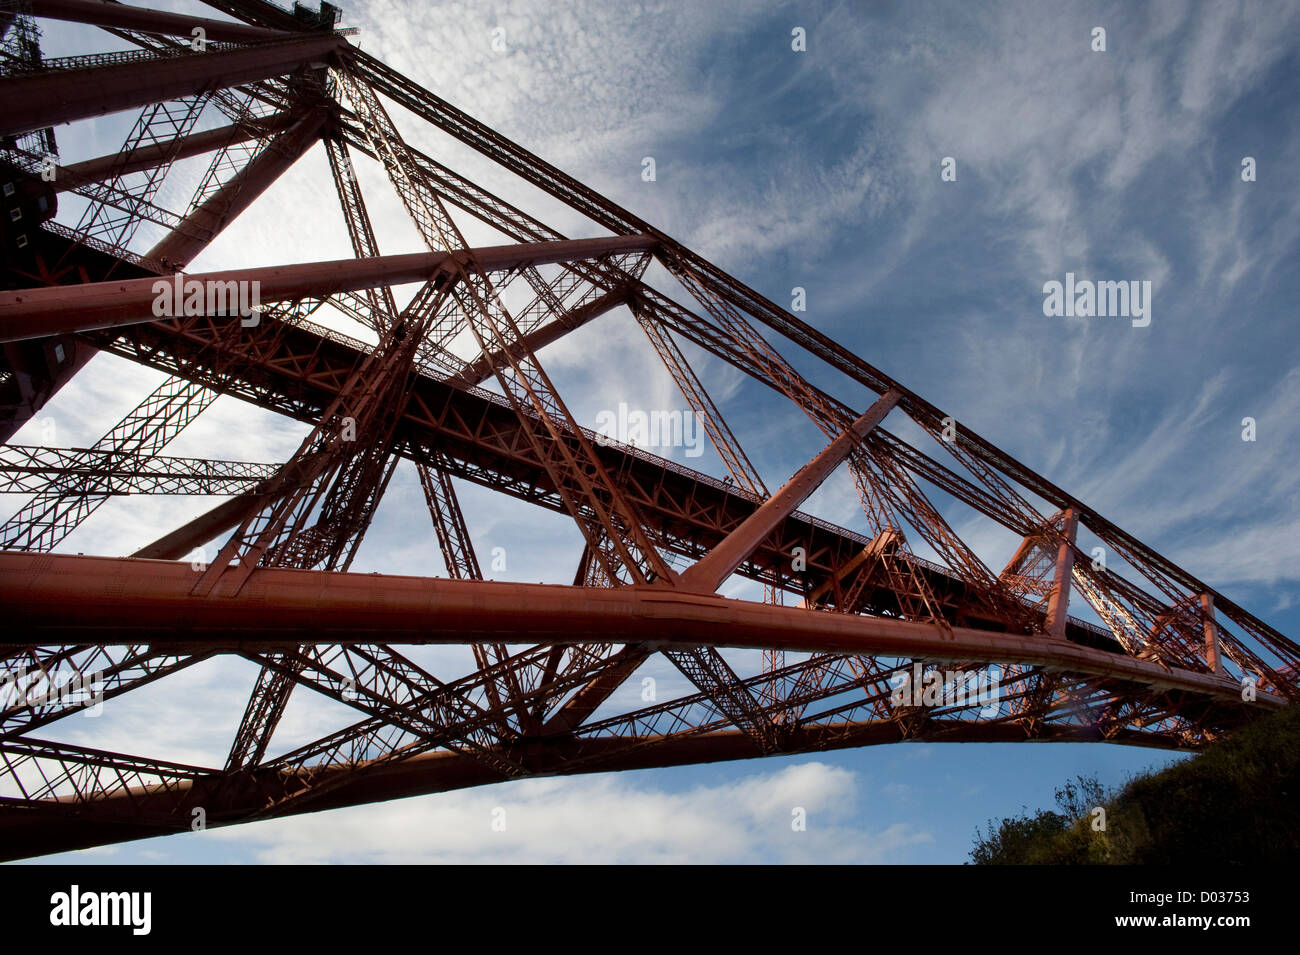 The span of the Forth Bridge, Scotland UK - Stock Image